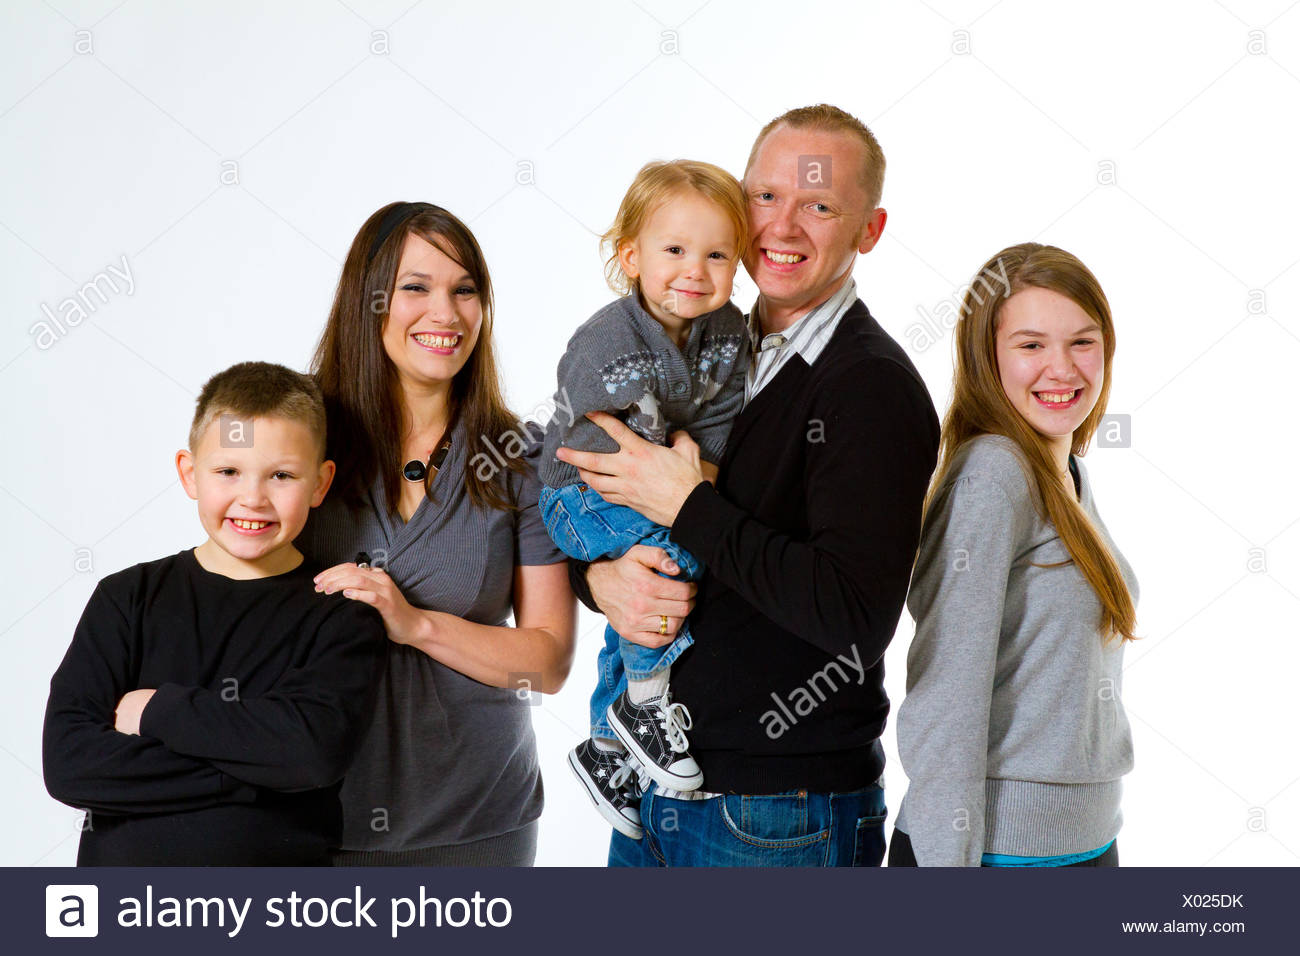 Family of Five Isolated - Stock Image